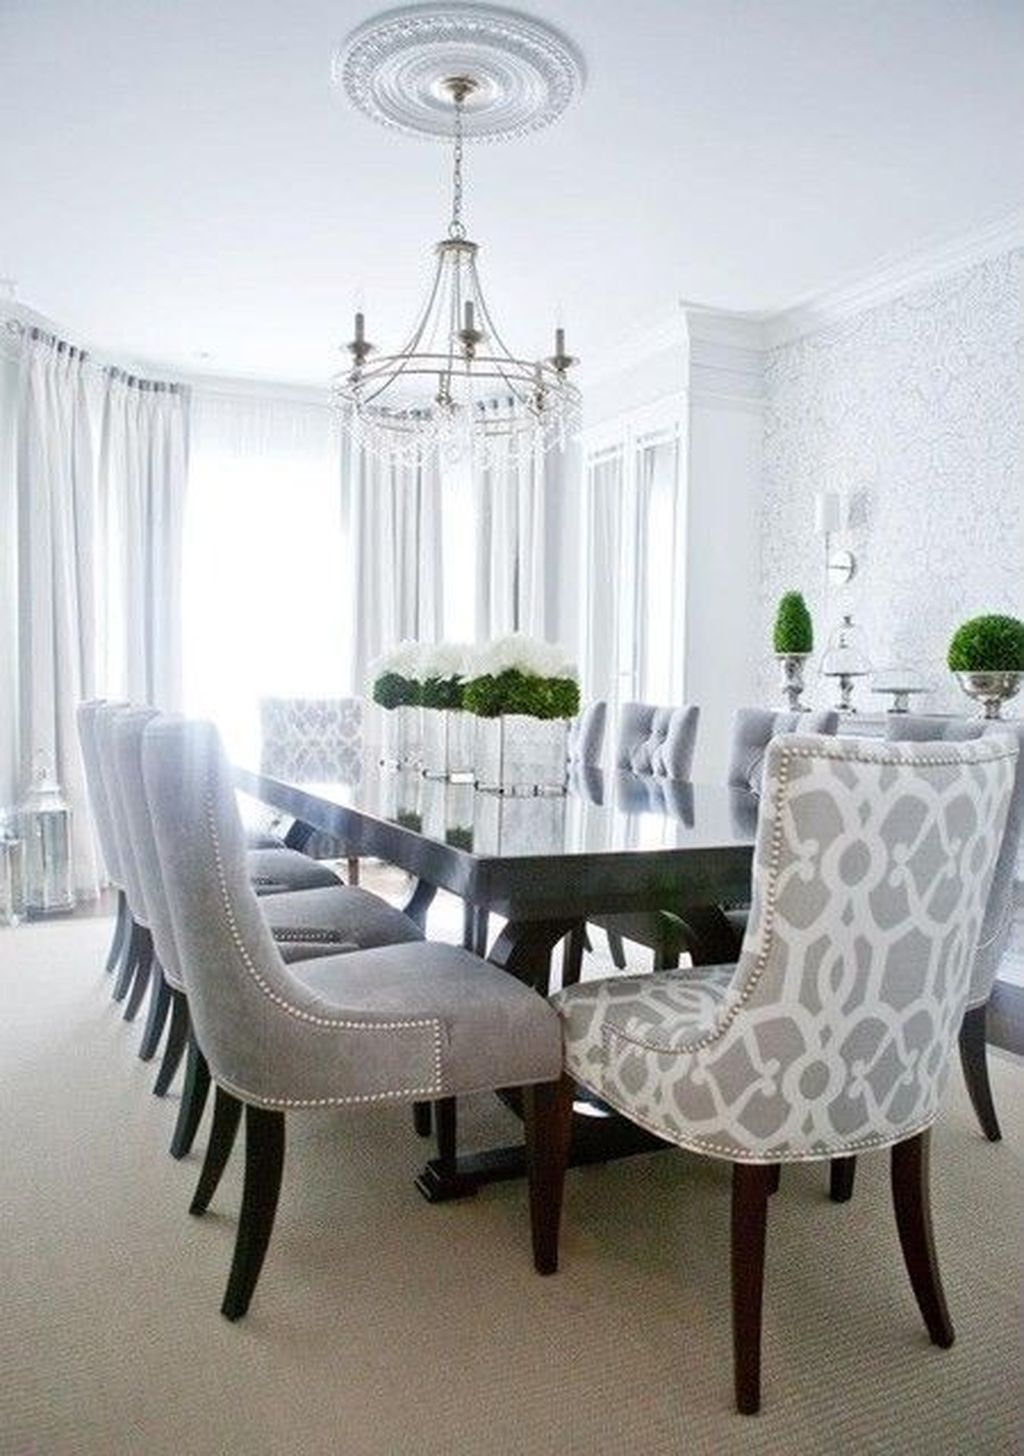 40 Classy Modern Contemporary Dining Room Ideas In 2020 Dining